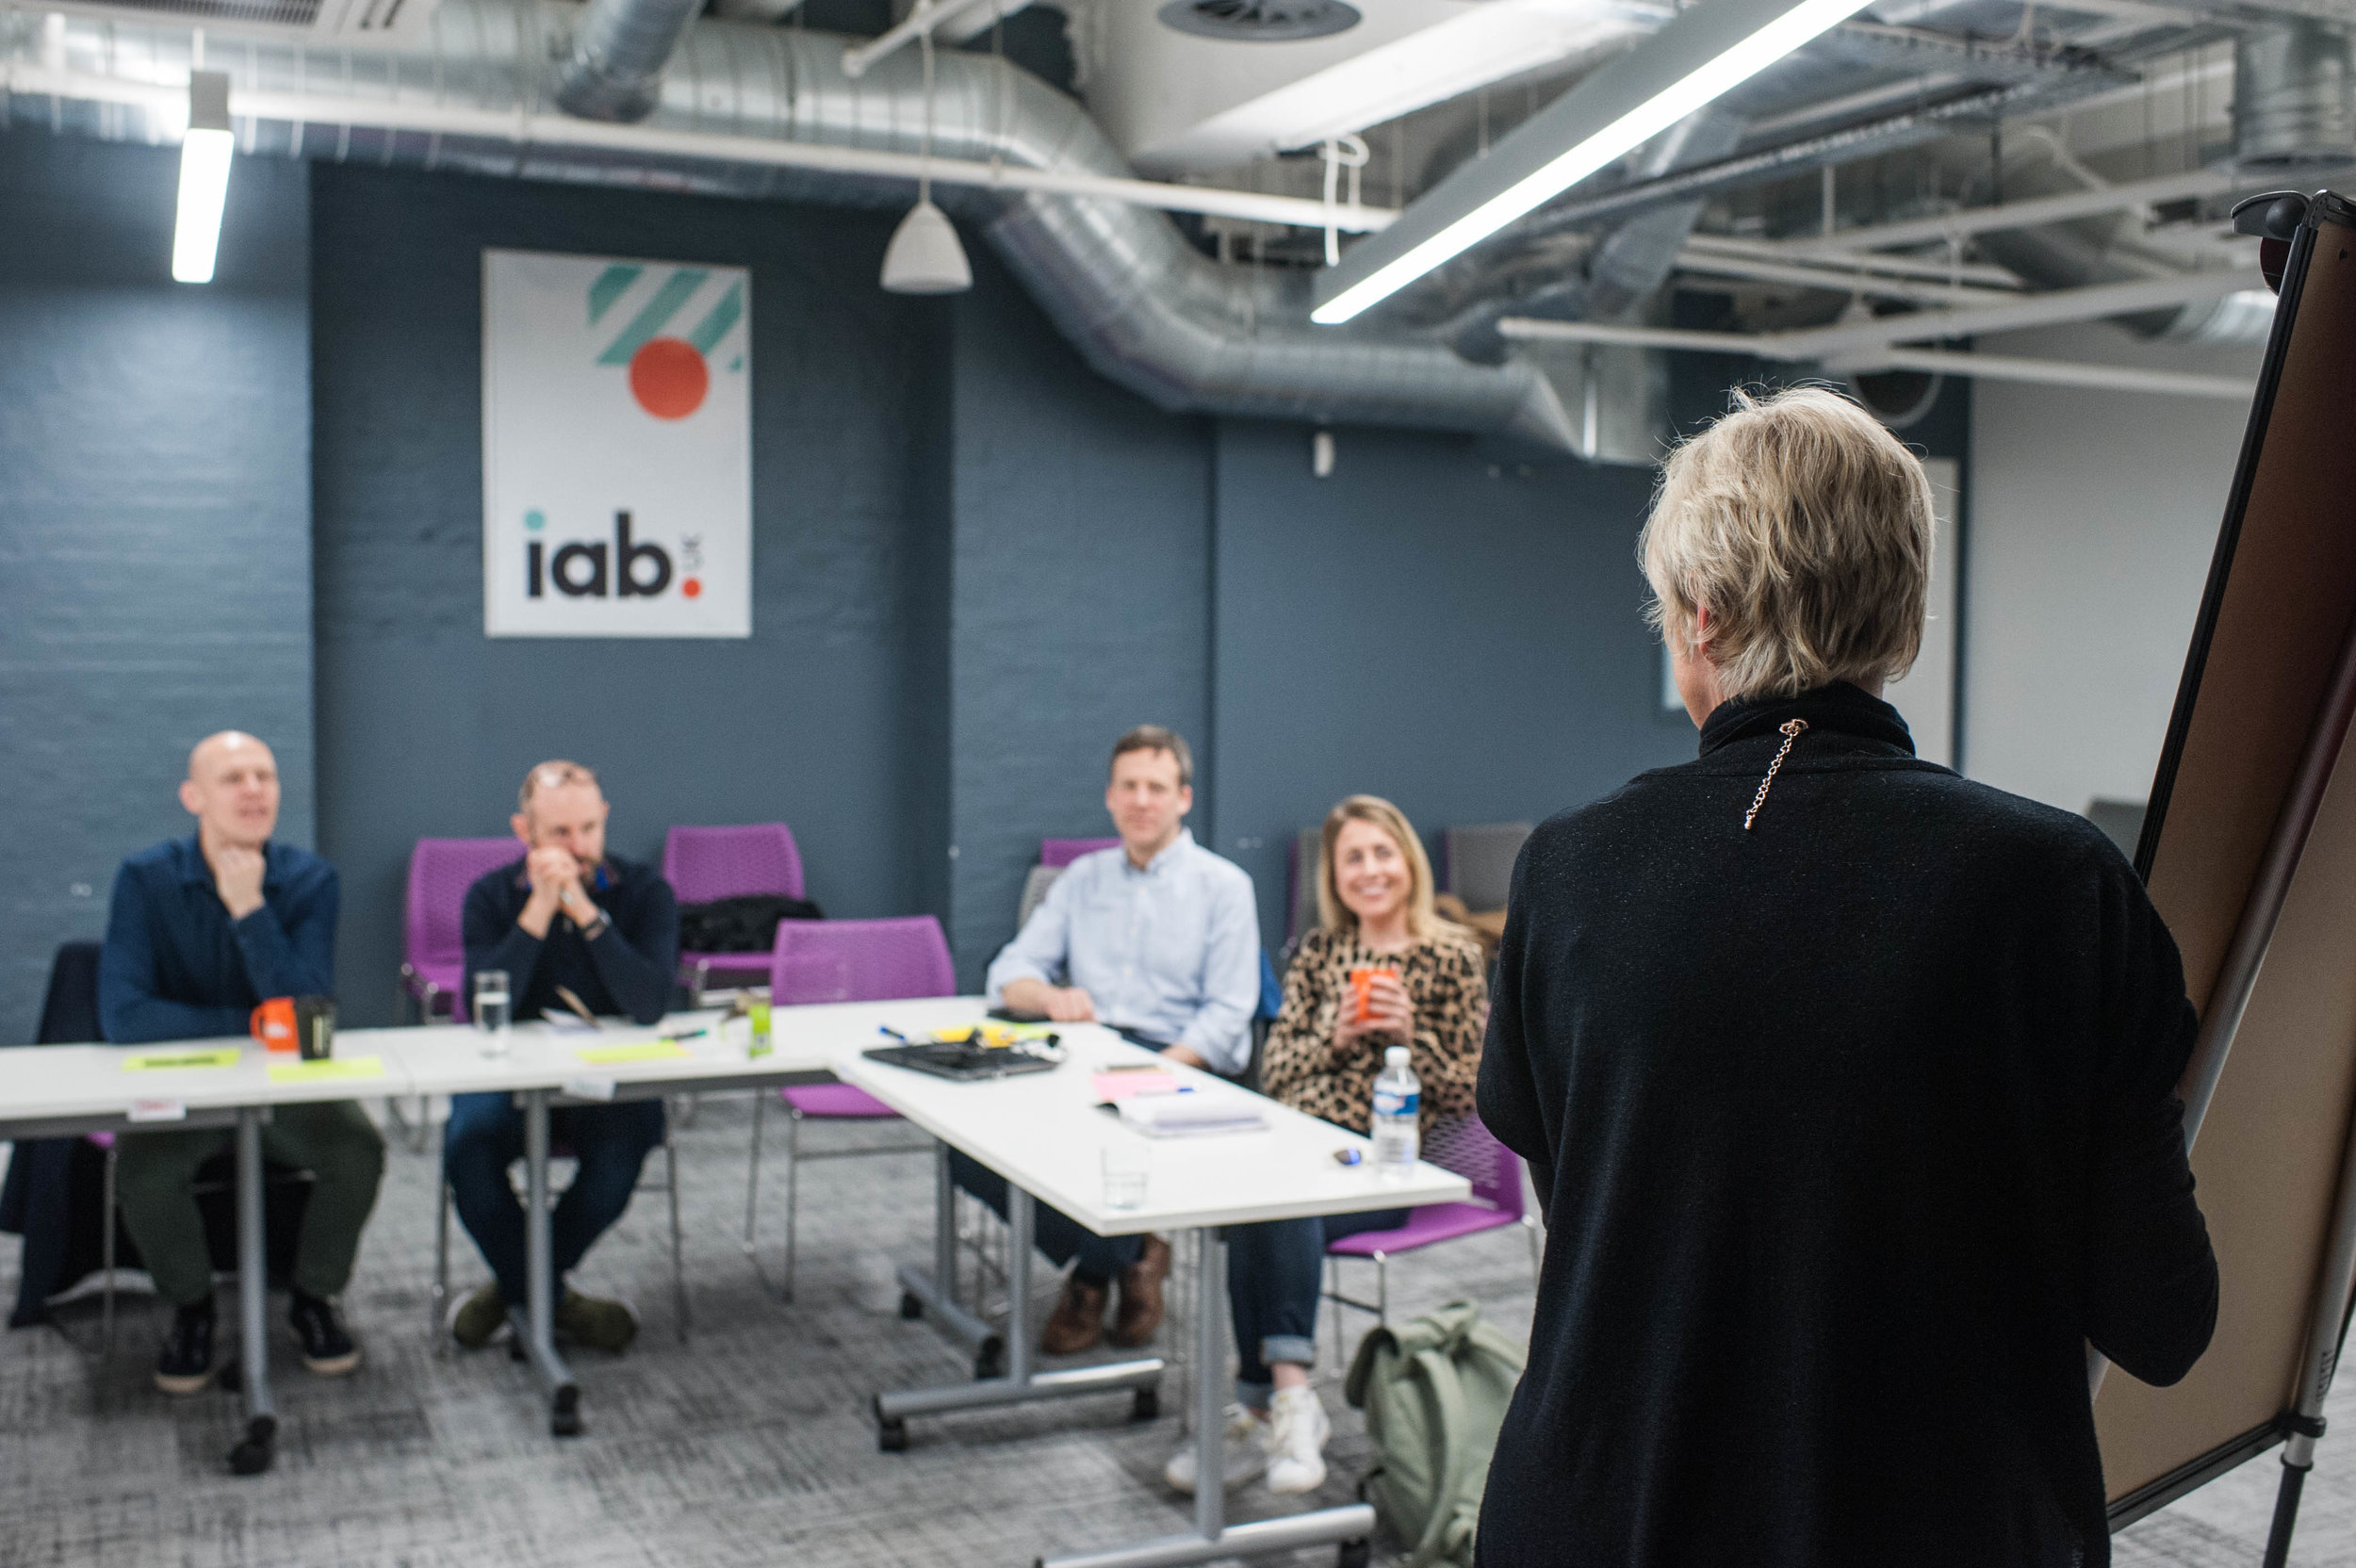 IAB Uk_Incidental Shots_SM (161 of 312).jpg